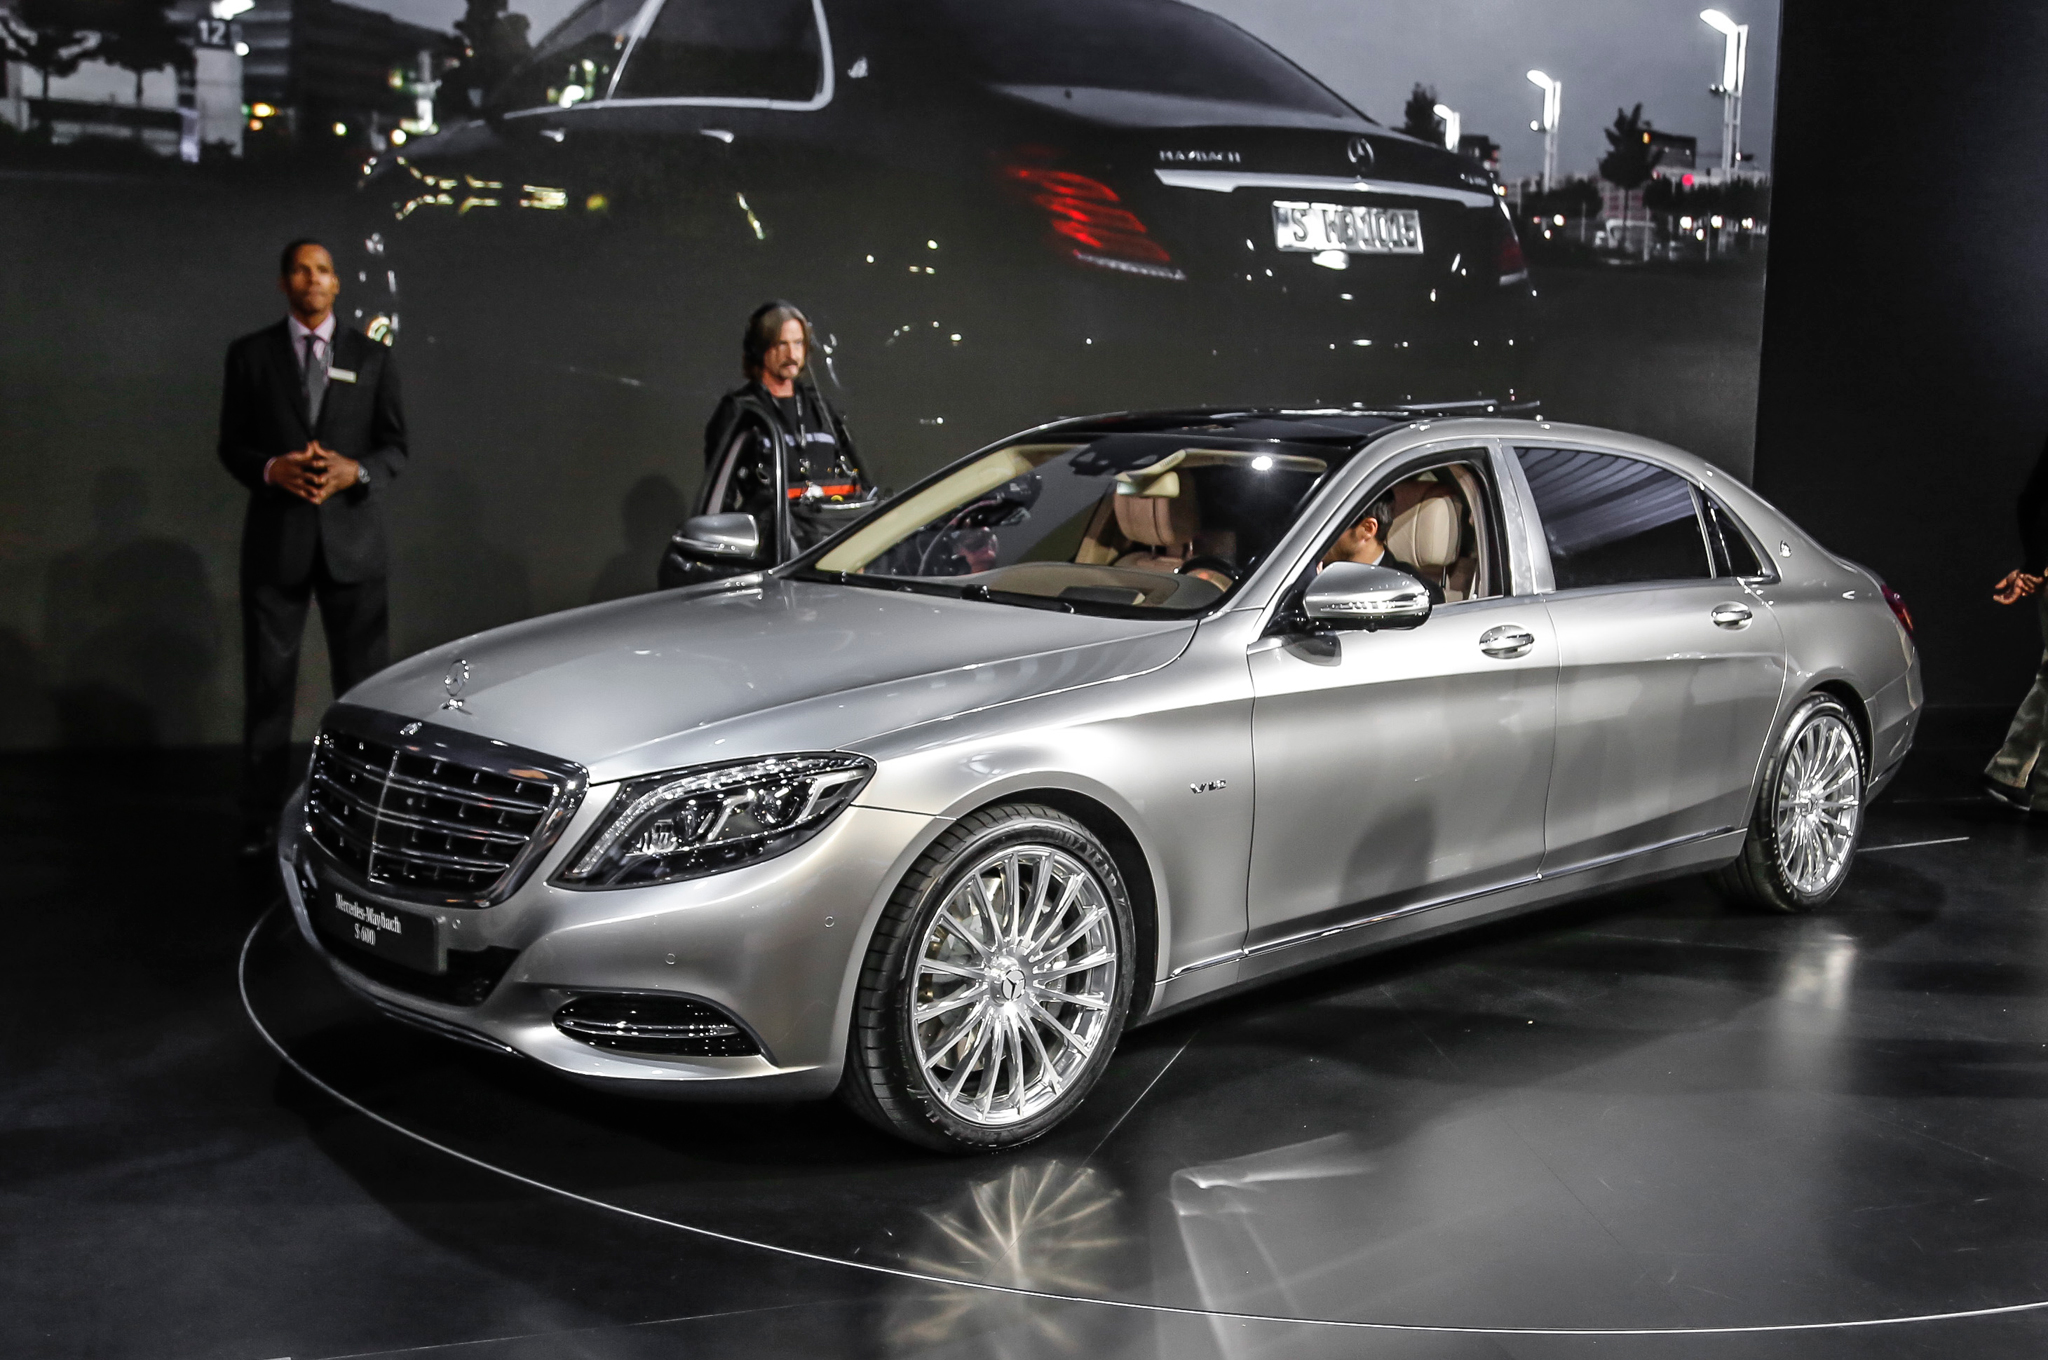 2016 mercedes benz s class image 6 for 2016 mercedes benz s